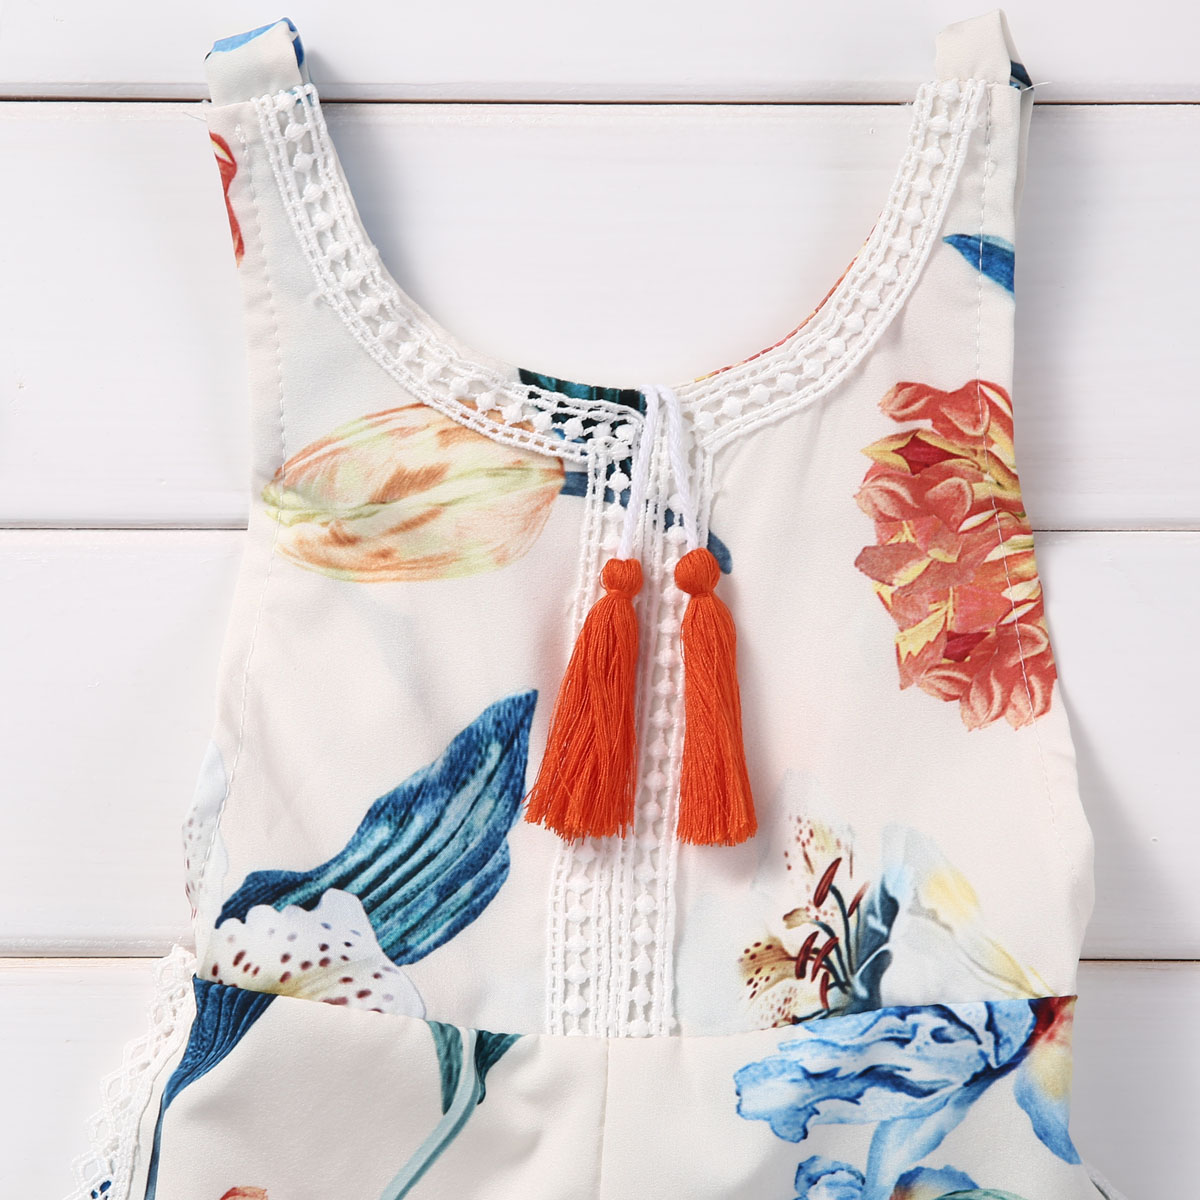 Cotton-Newborn-Kids-Baby-Girl-Sleveless-Lace-Romper-Lily-printing-Jumpsuit-Clothes-Sunsuit-Outfits-2